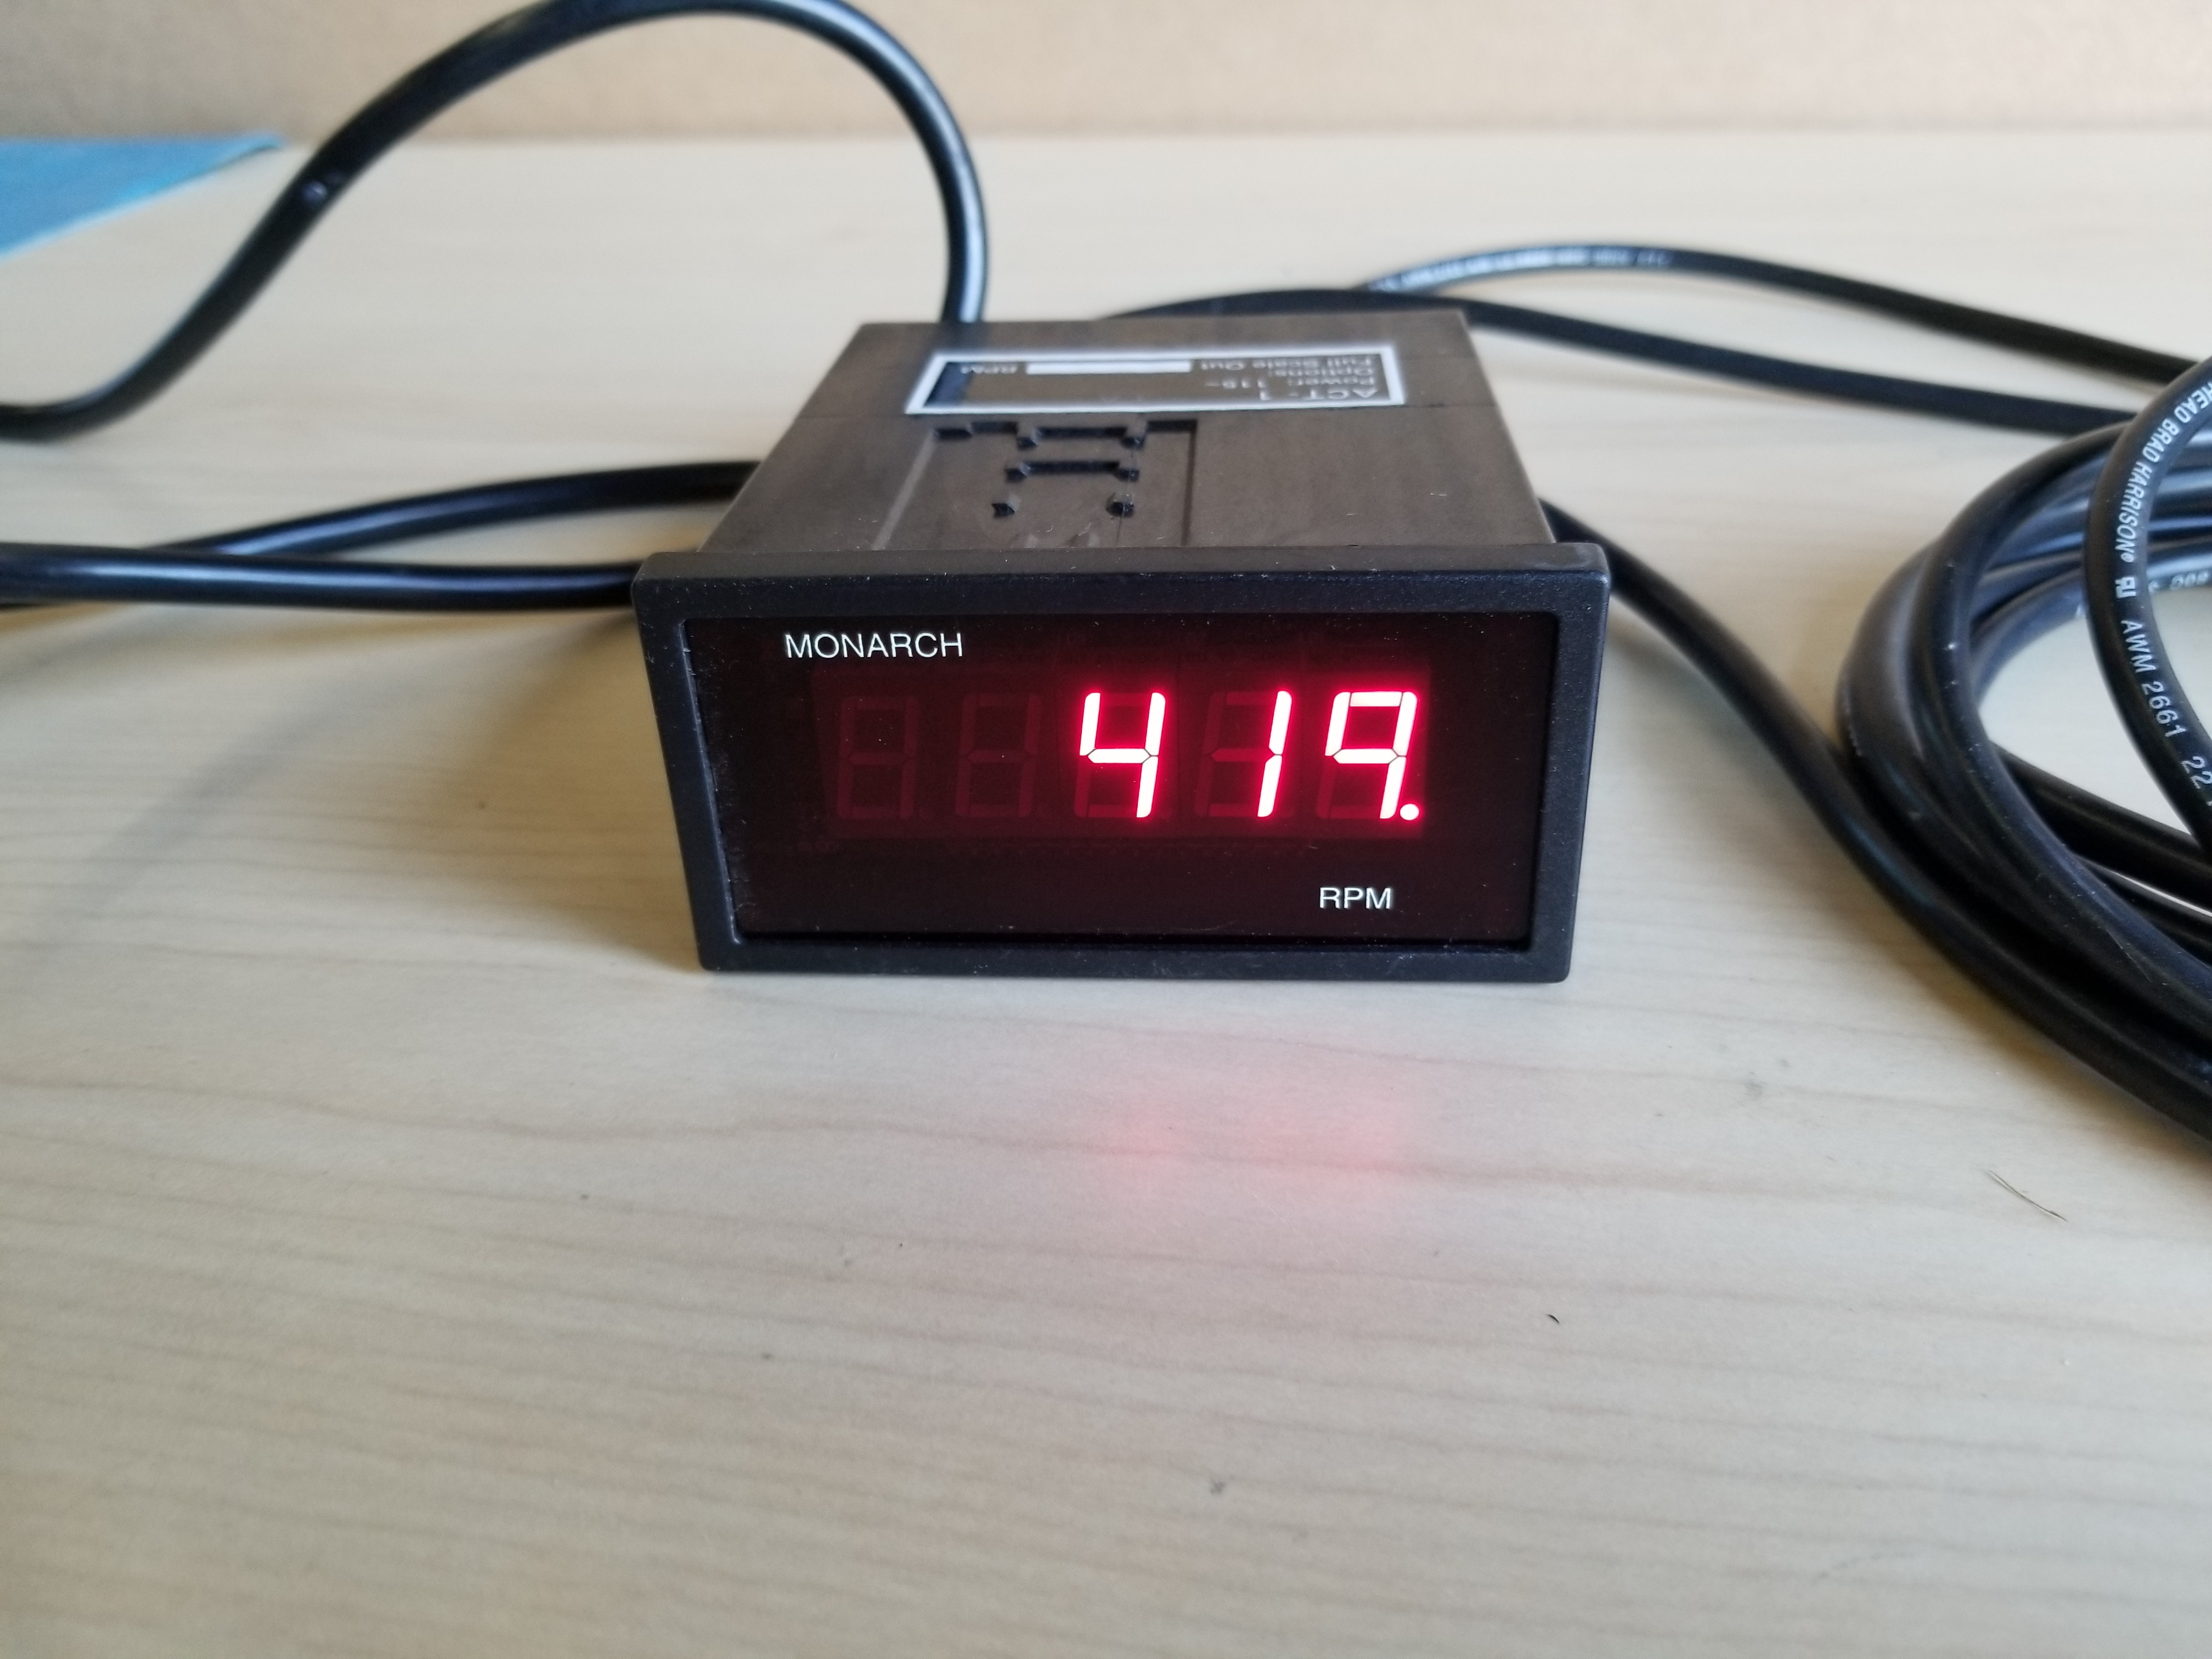 Monarch Digital Tachometer Panel Meter & Remote Optical LED Sensor - Image 15 of 16